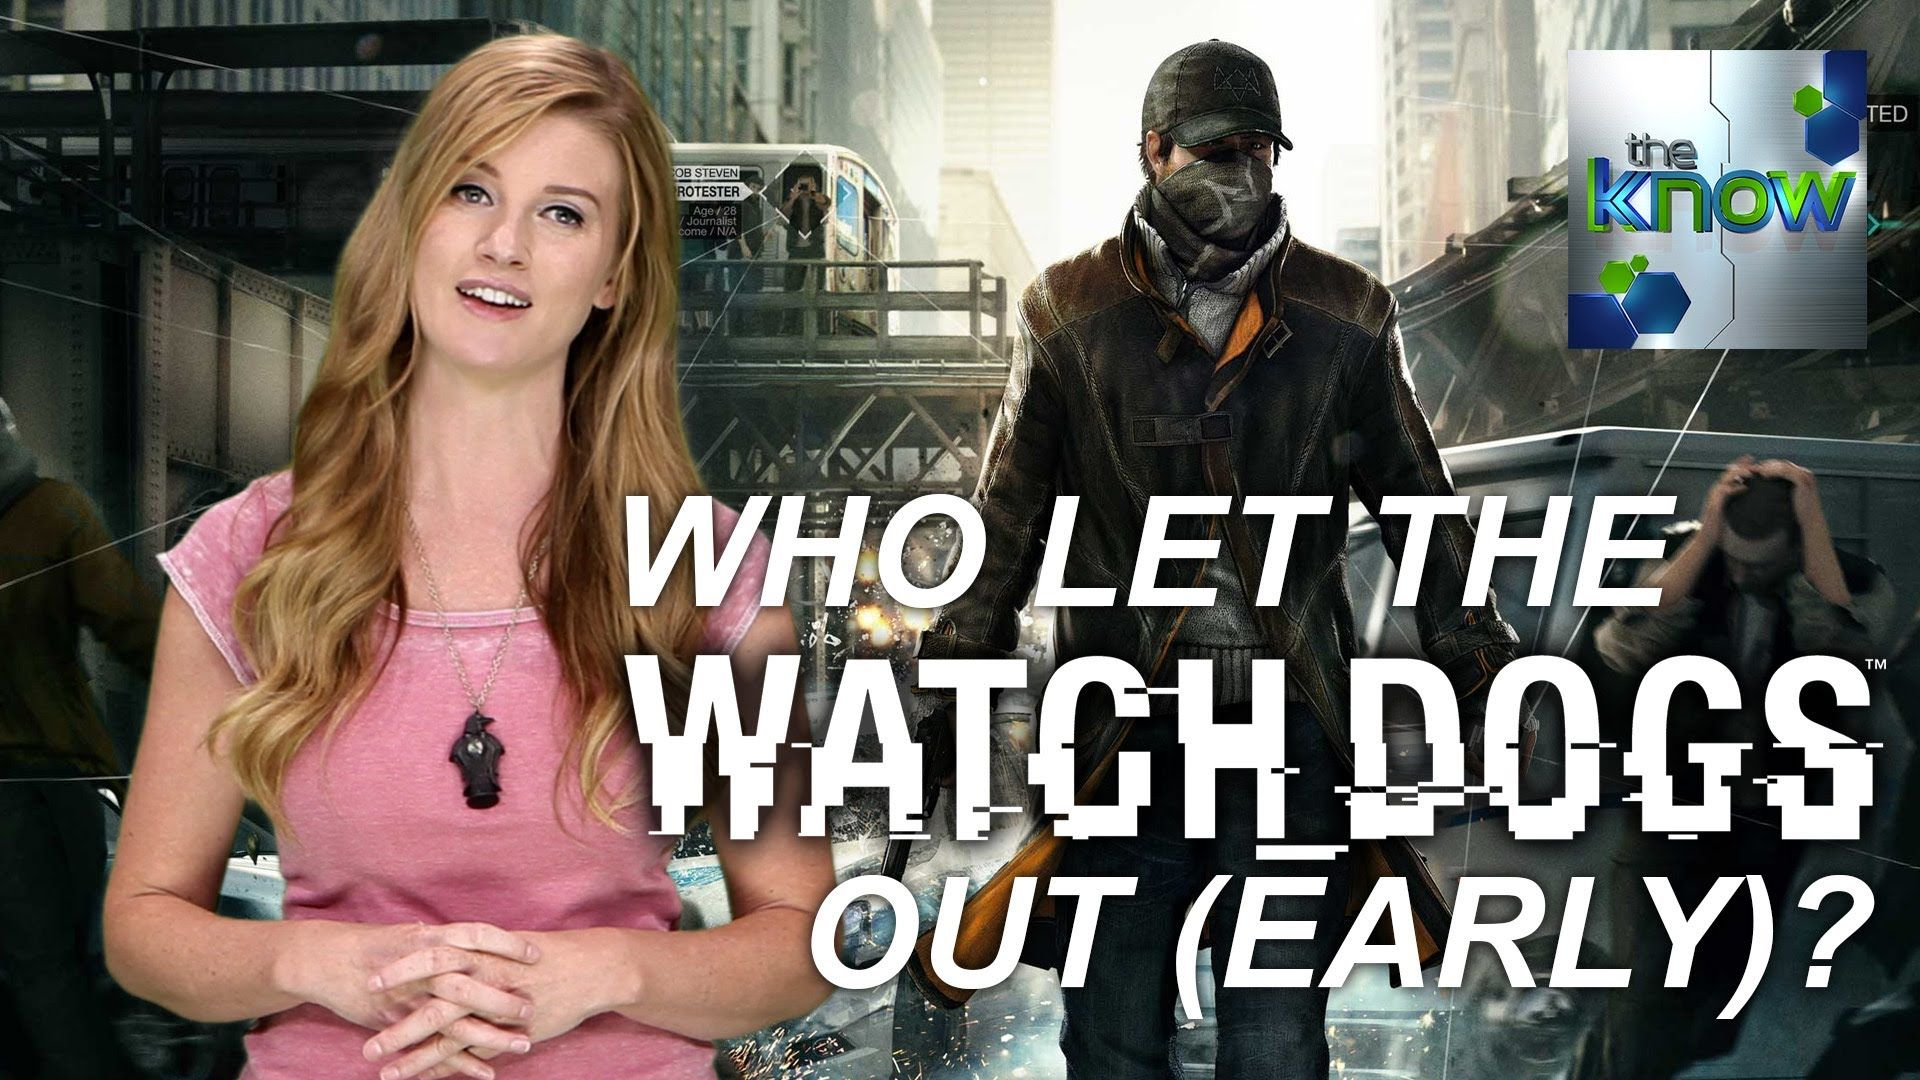 Who Let The Watch Dogs Out (Early?) - The Know